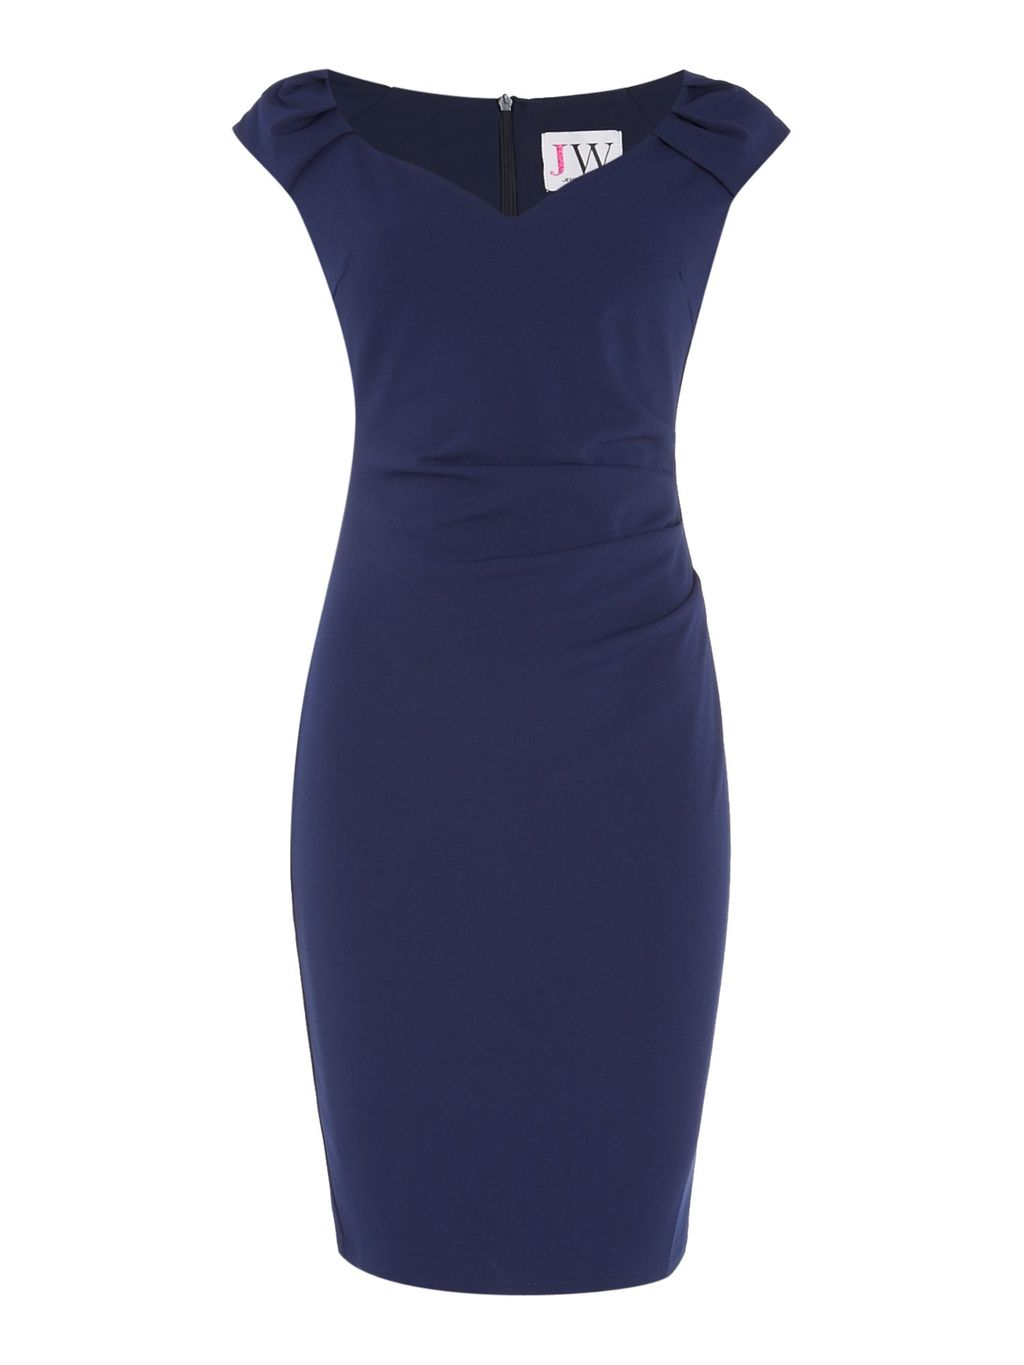 Off Shoulder Gathered Waist Bodycon Dress, Navy - style: shift; sleeve style: capped; fit: tight; pattern: plain; neckline: sweetheart; predominant colour: navy; length: on the knee; fibres: polyester/polyamide - stretch; occasions: occasion; sleeve length: short sleeve; pattern type: fabric; texture group: jersey - stretchy/drapey; season: s/s 2016; wardrobe: event